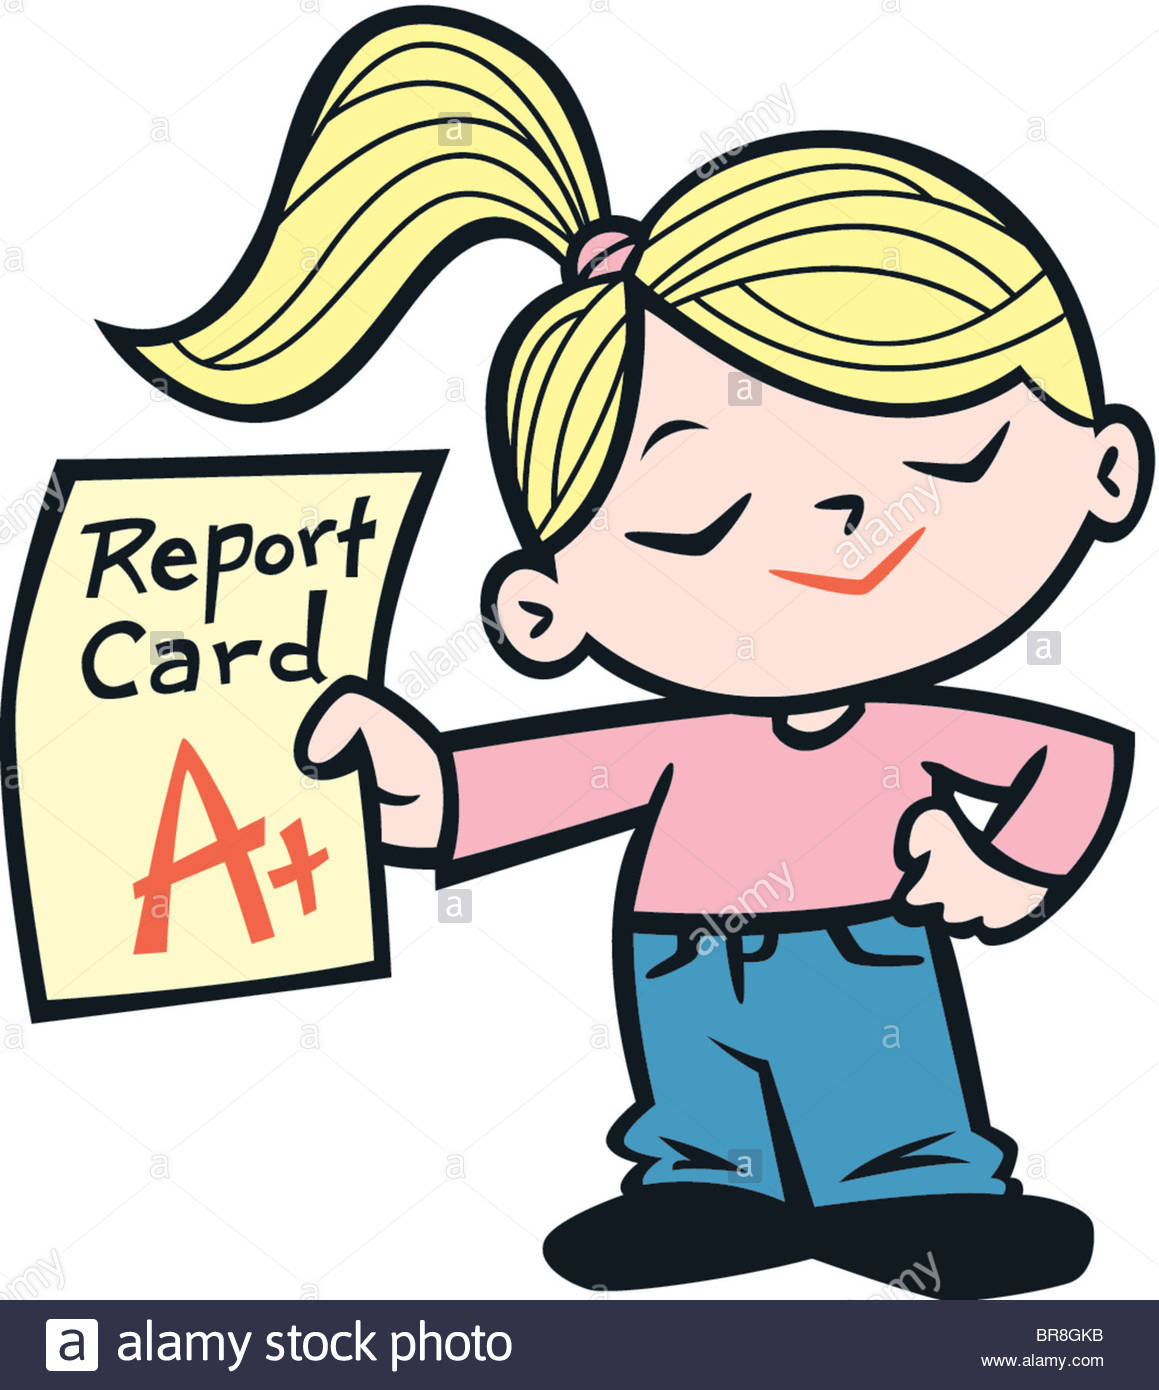 1159x1390 Report Card School Stock Photos Amp Report Card School Stock Images